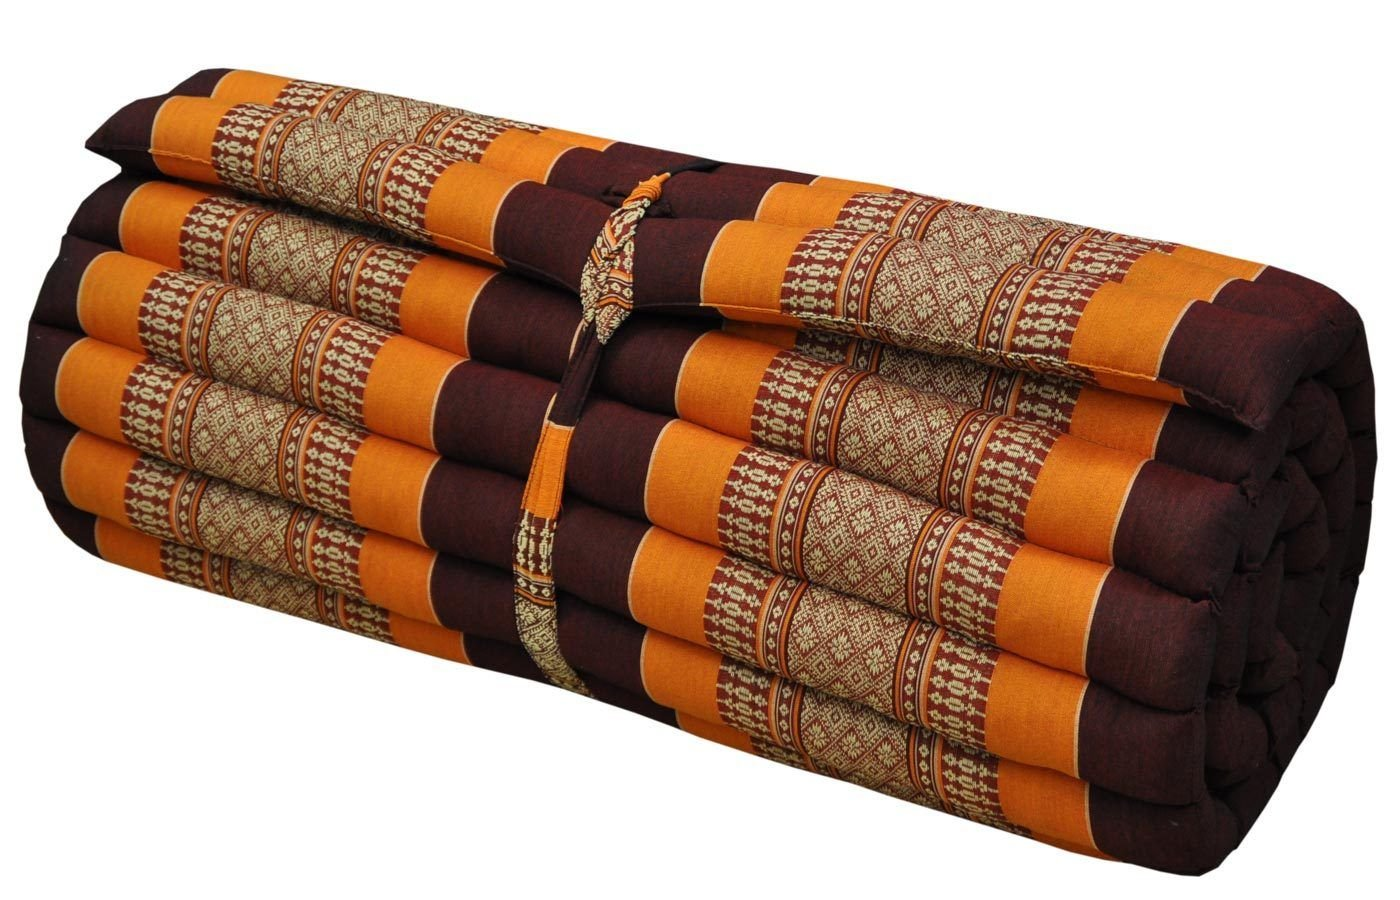 Noinoi@roll up Thai Mattress Kapok (Large, Orange-Brown)